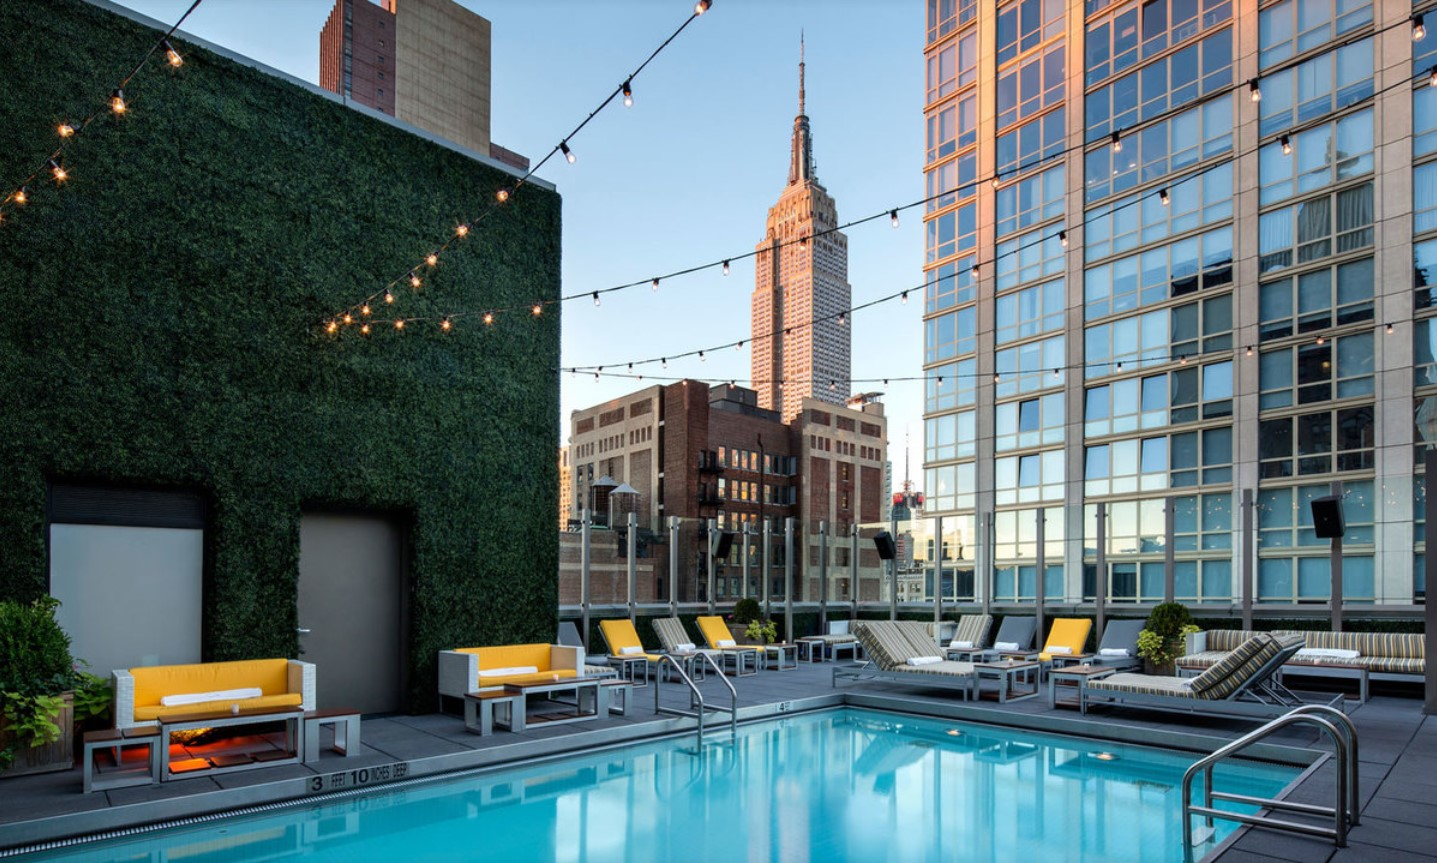 Rooftop pool with Empire State Building in background